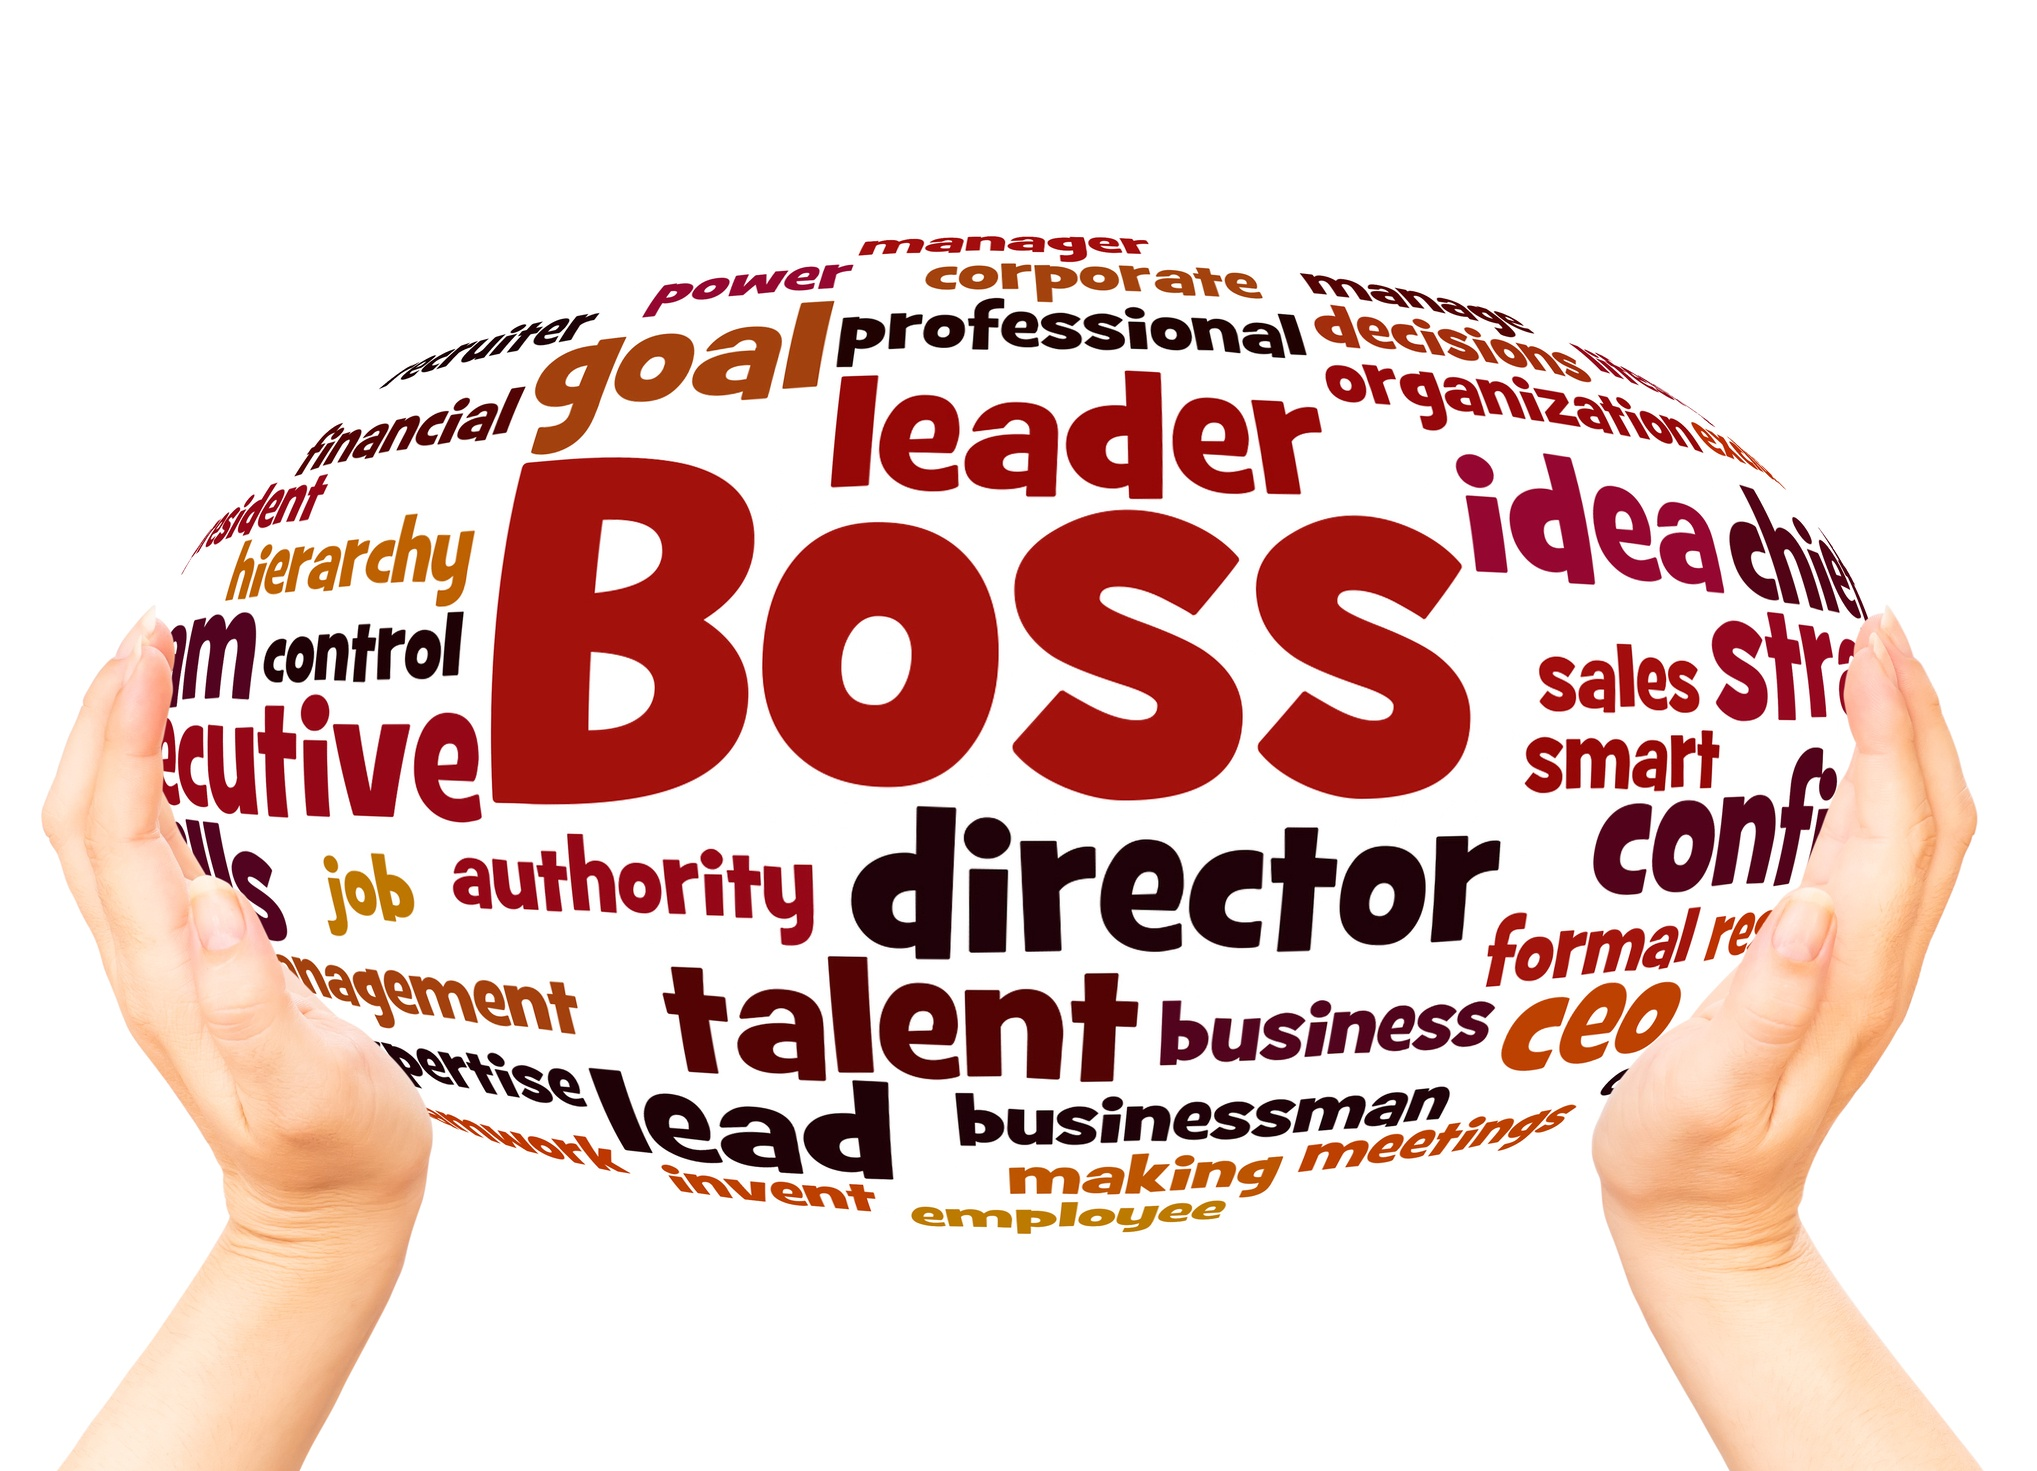 Likeable boss training